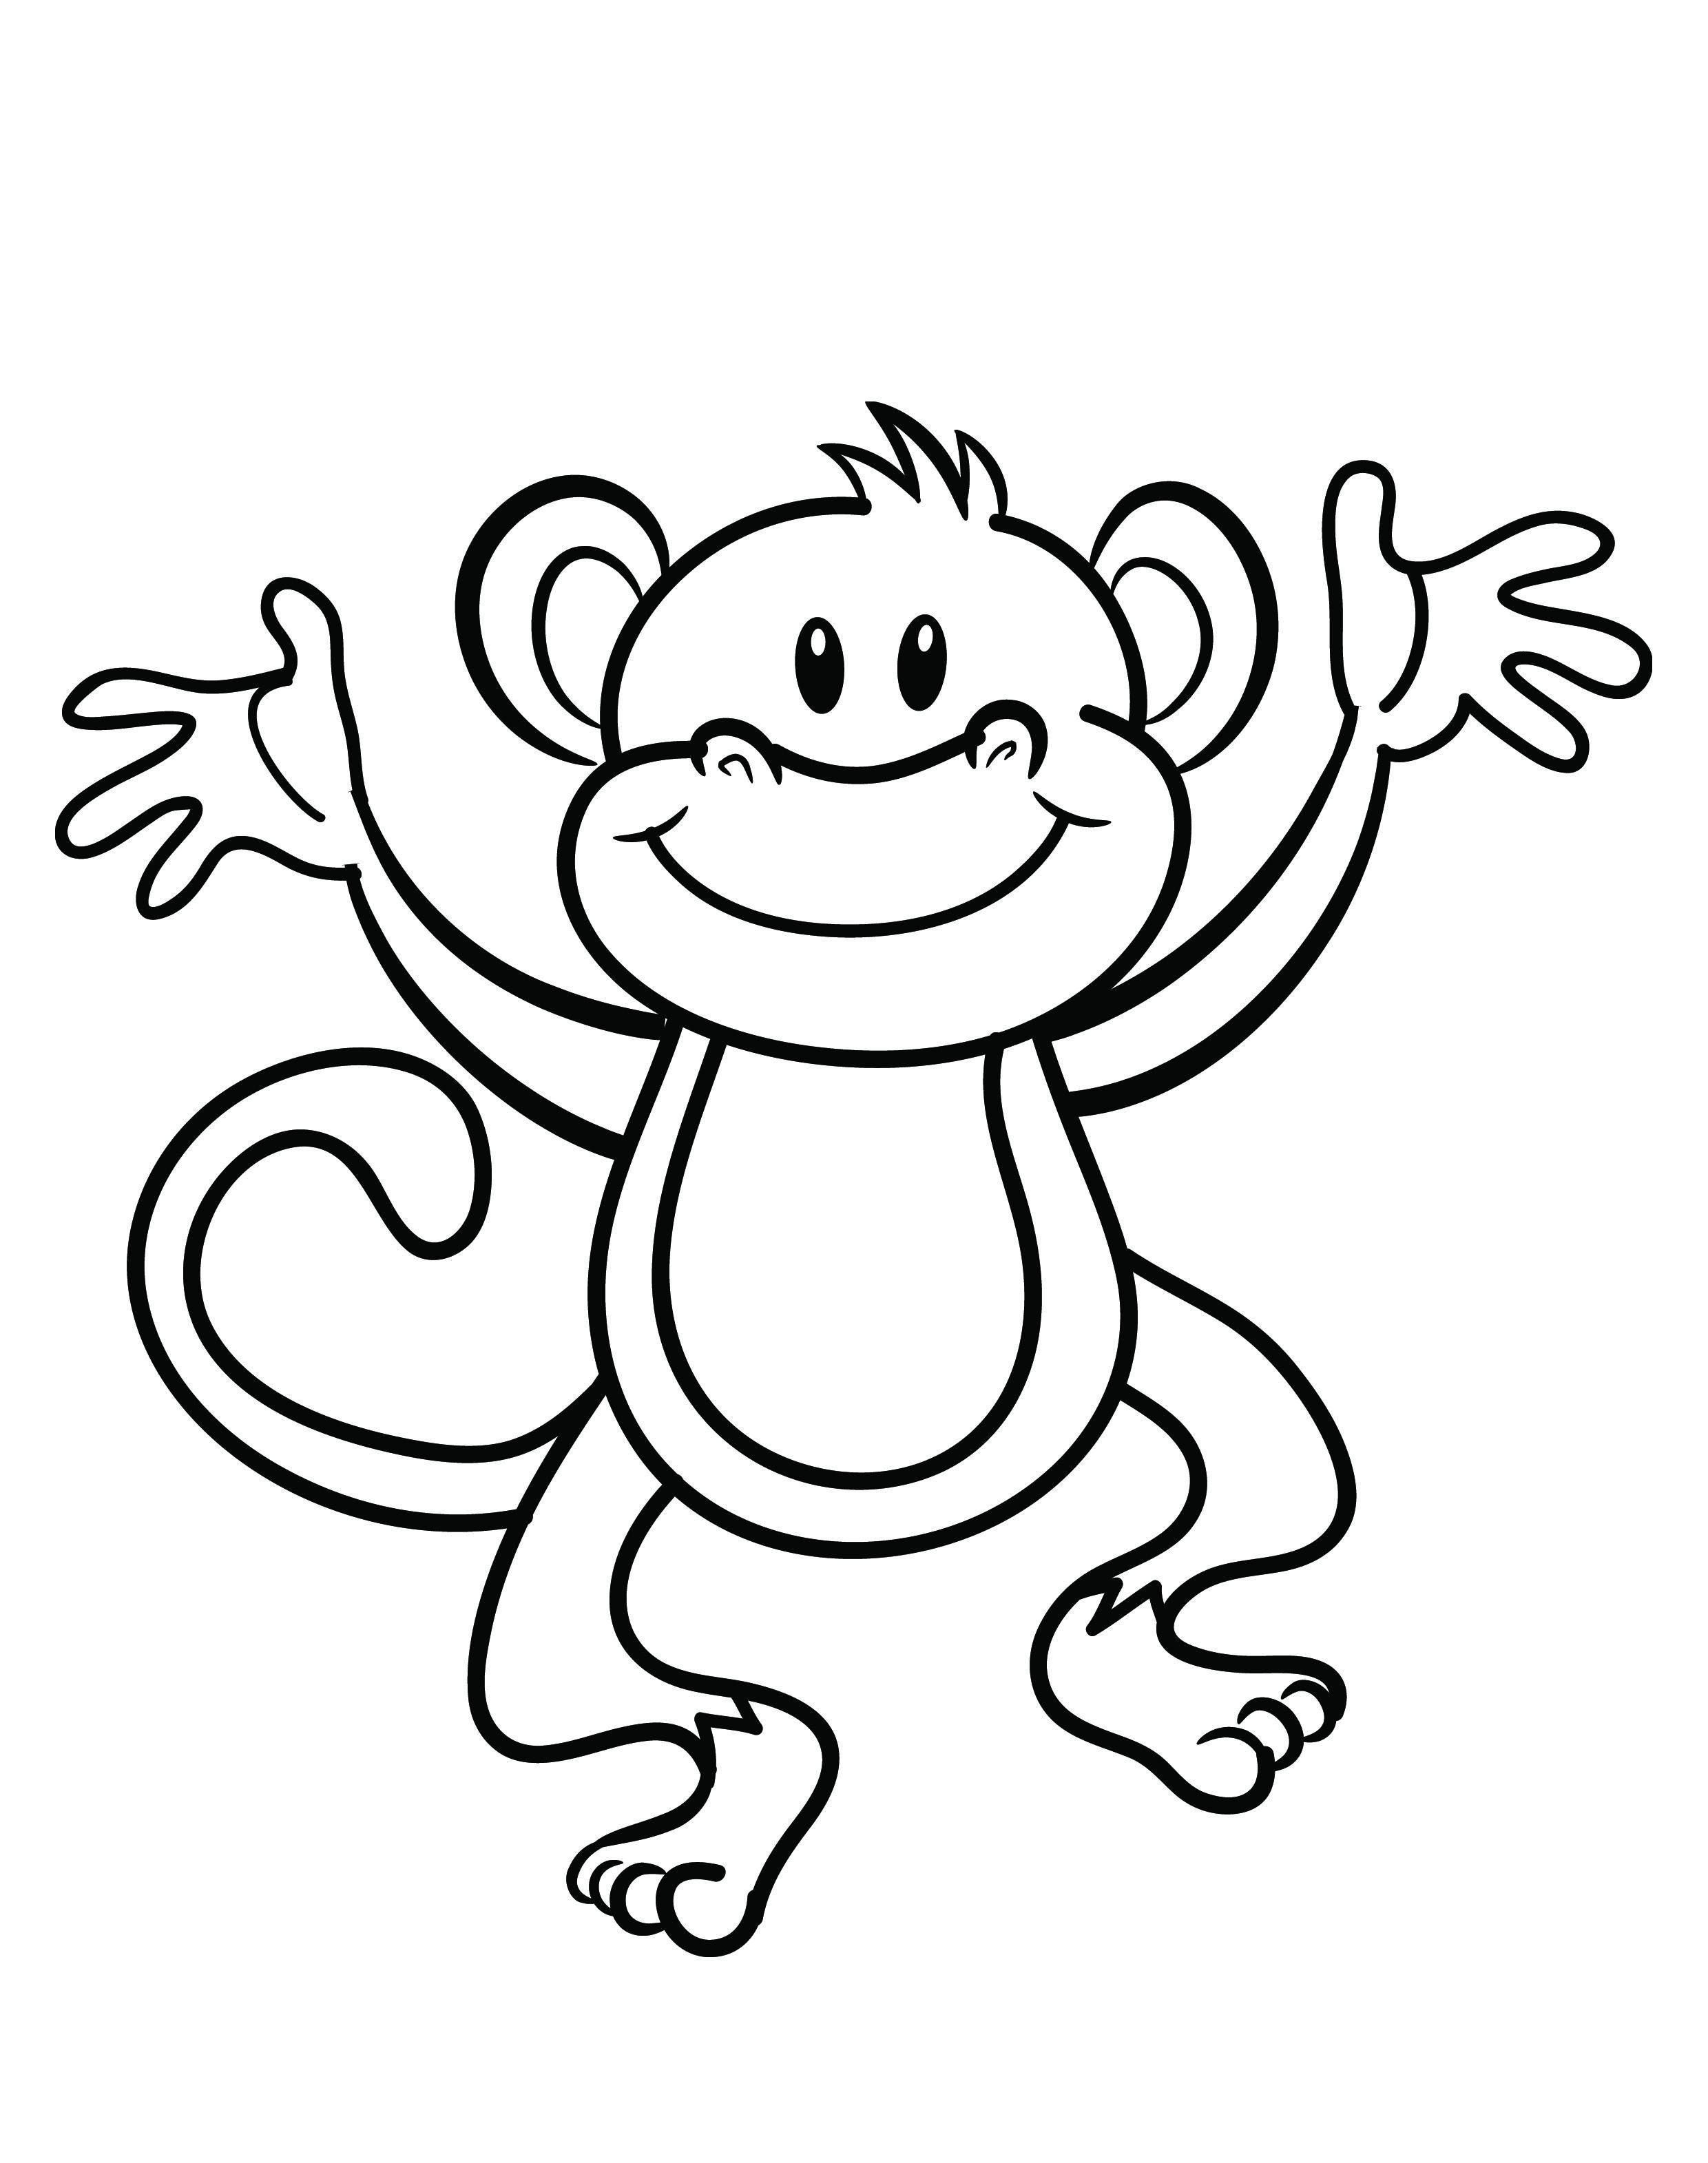 Delightful Free Printable Monkey Coloring Page